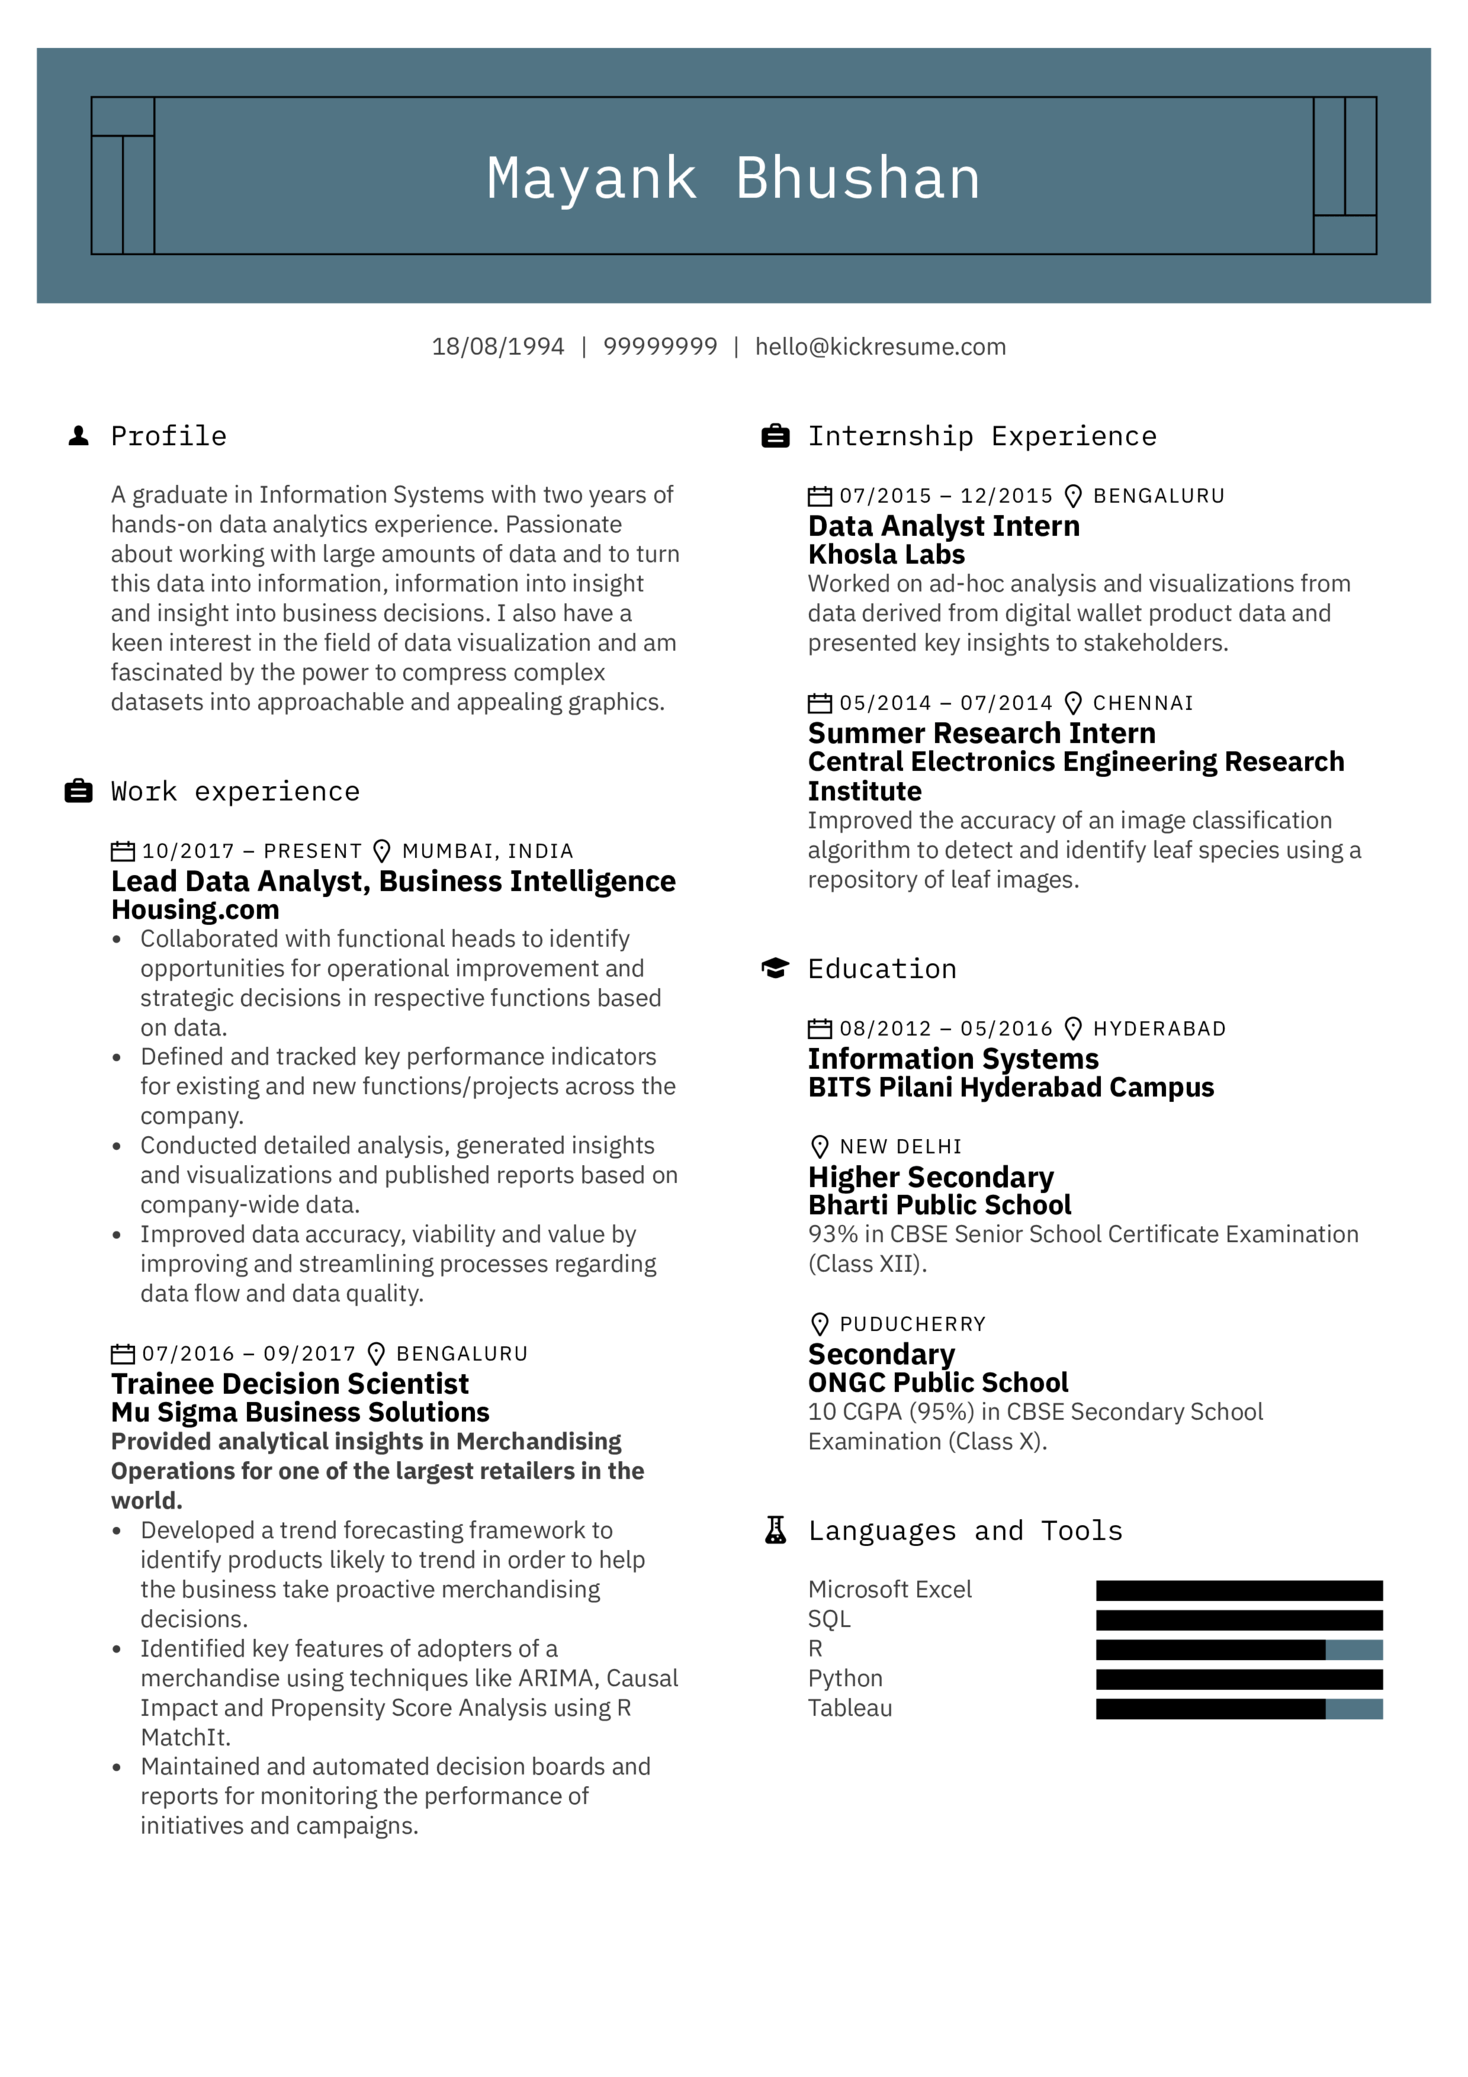 Lead Data Analyst Resume Example (Parte 1)